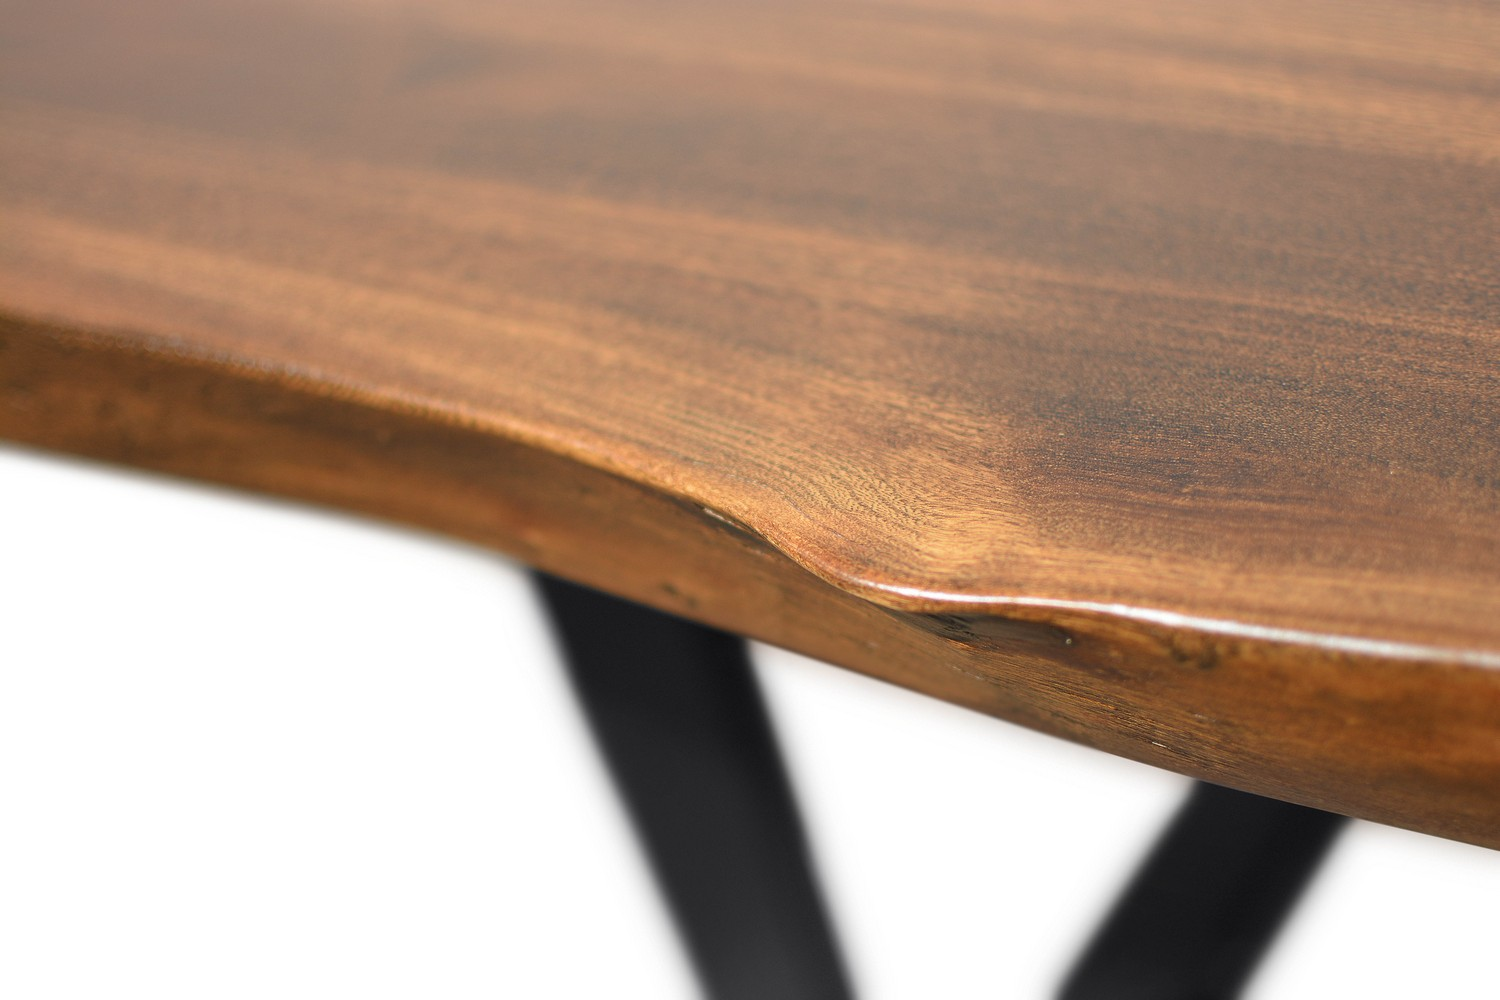 Etz & Steel Live Edge Cognac Table Close Up 3.jpg